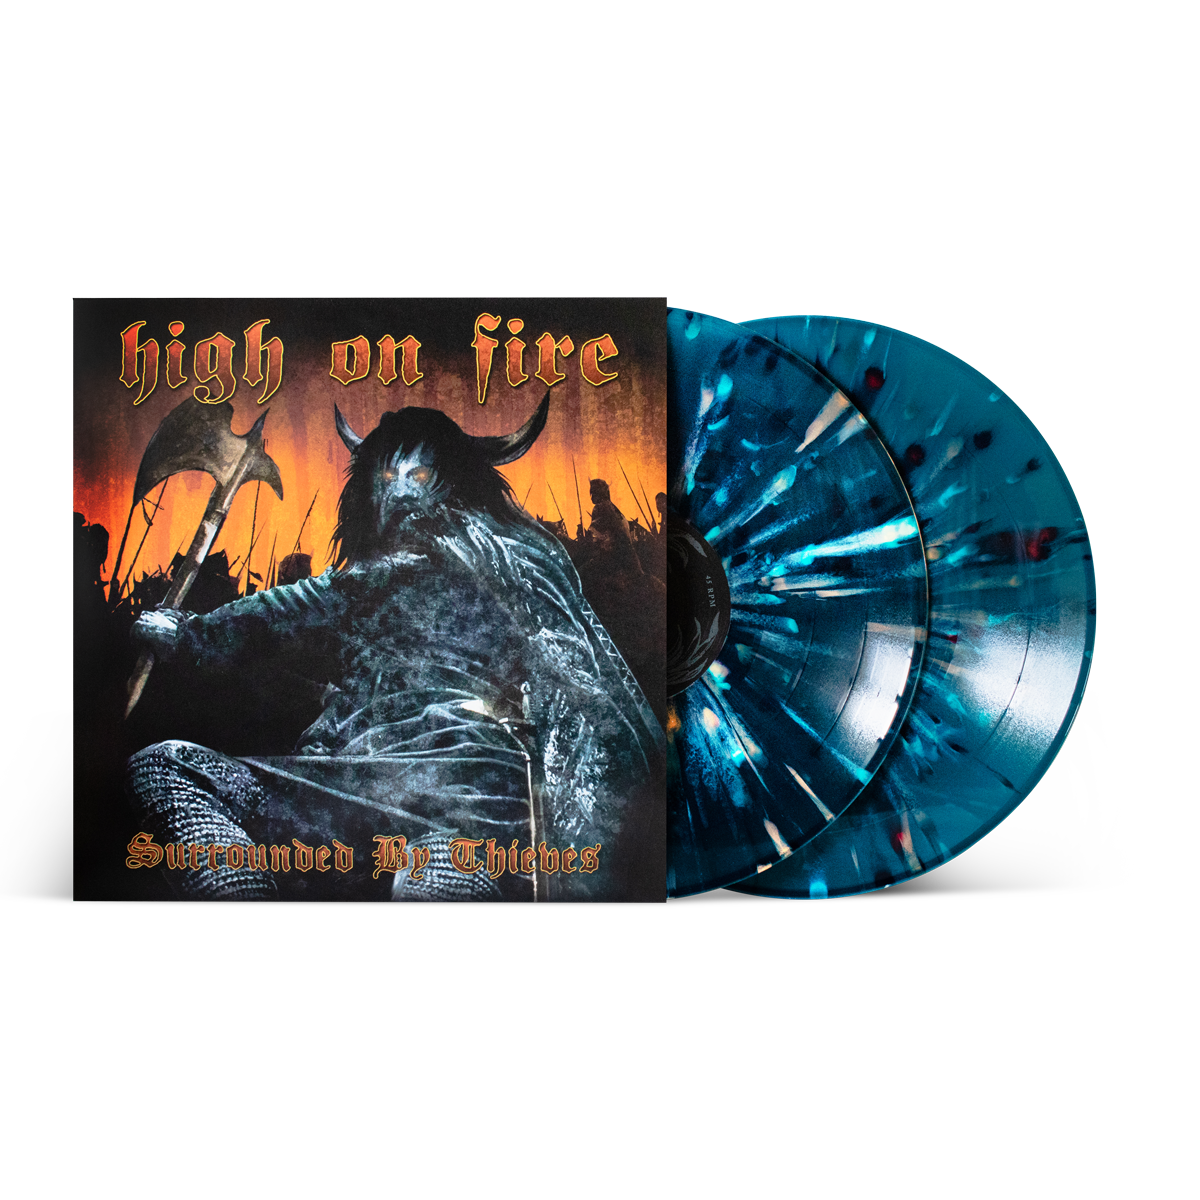 highonfire.thieves.blue.png